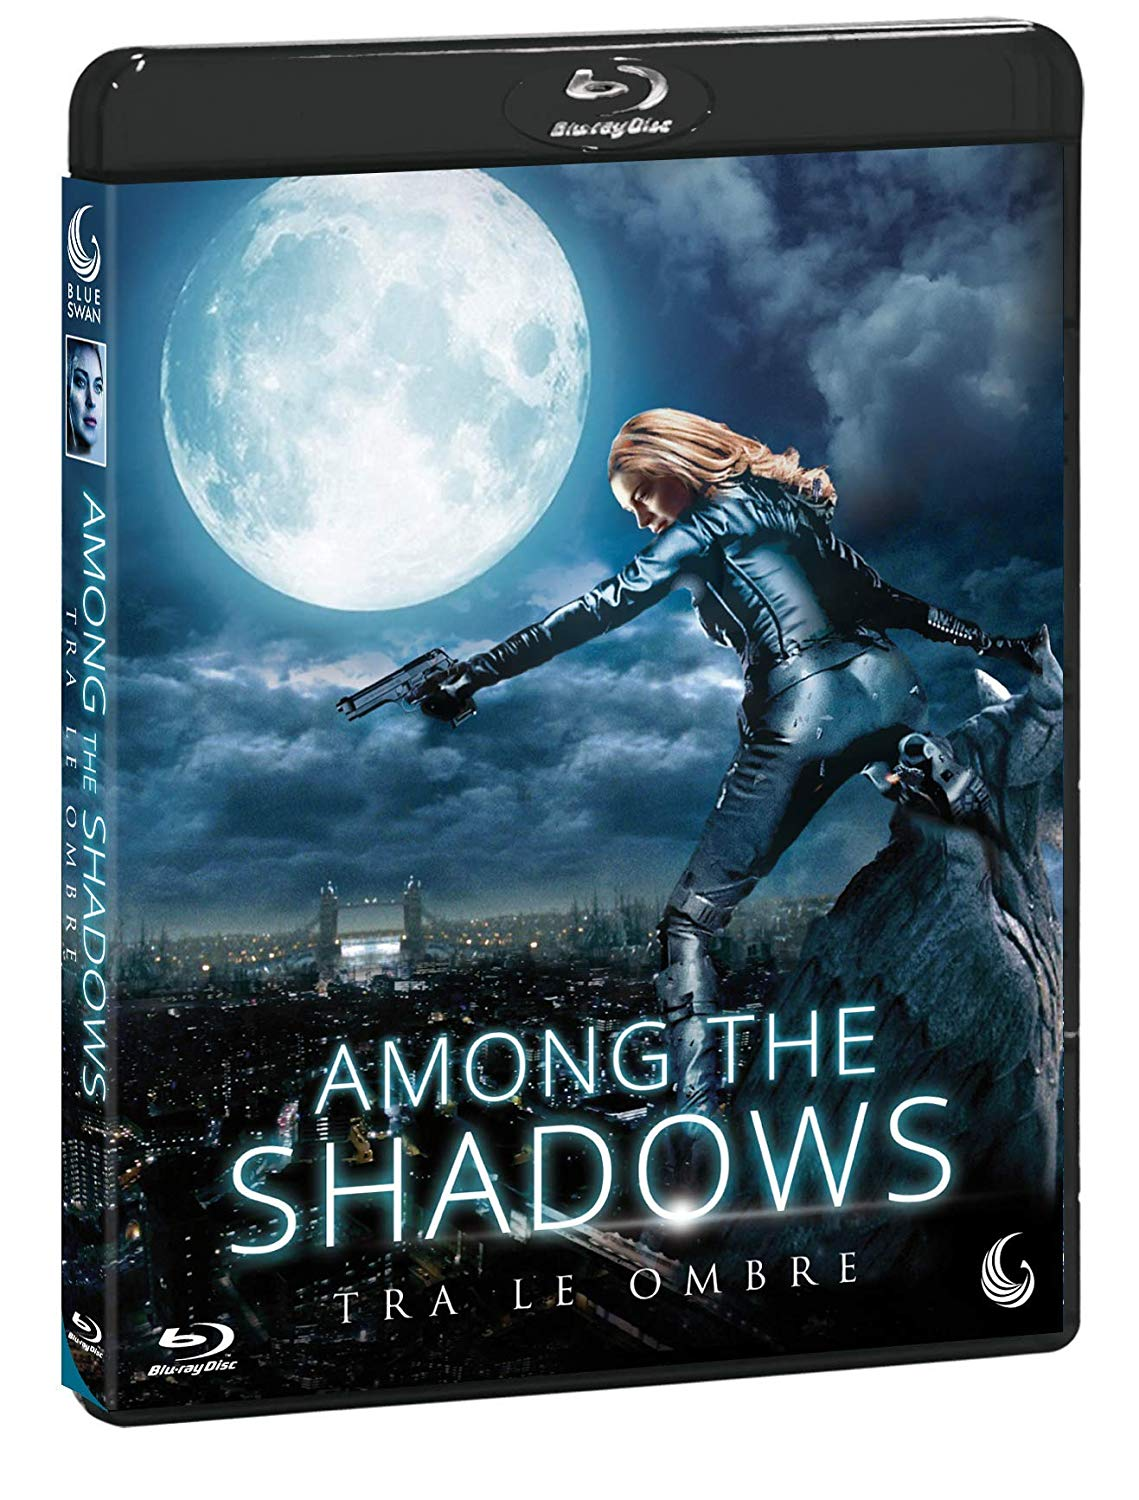 AMONG THE SHADOWS - TRA LE OMBRE - BLU RAY